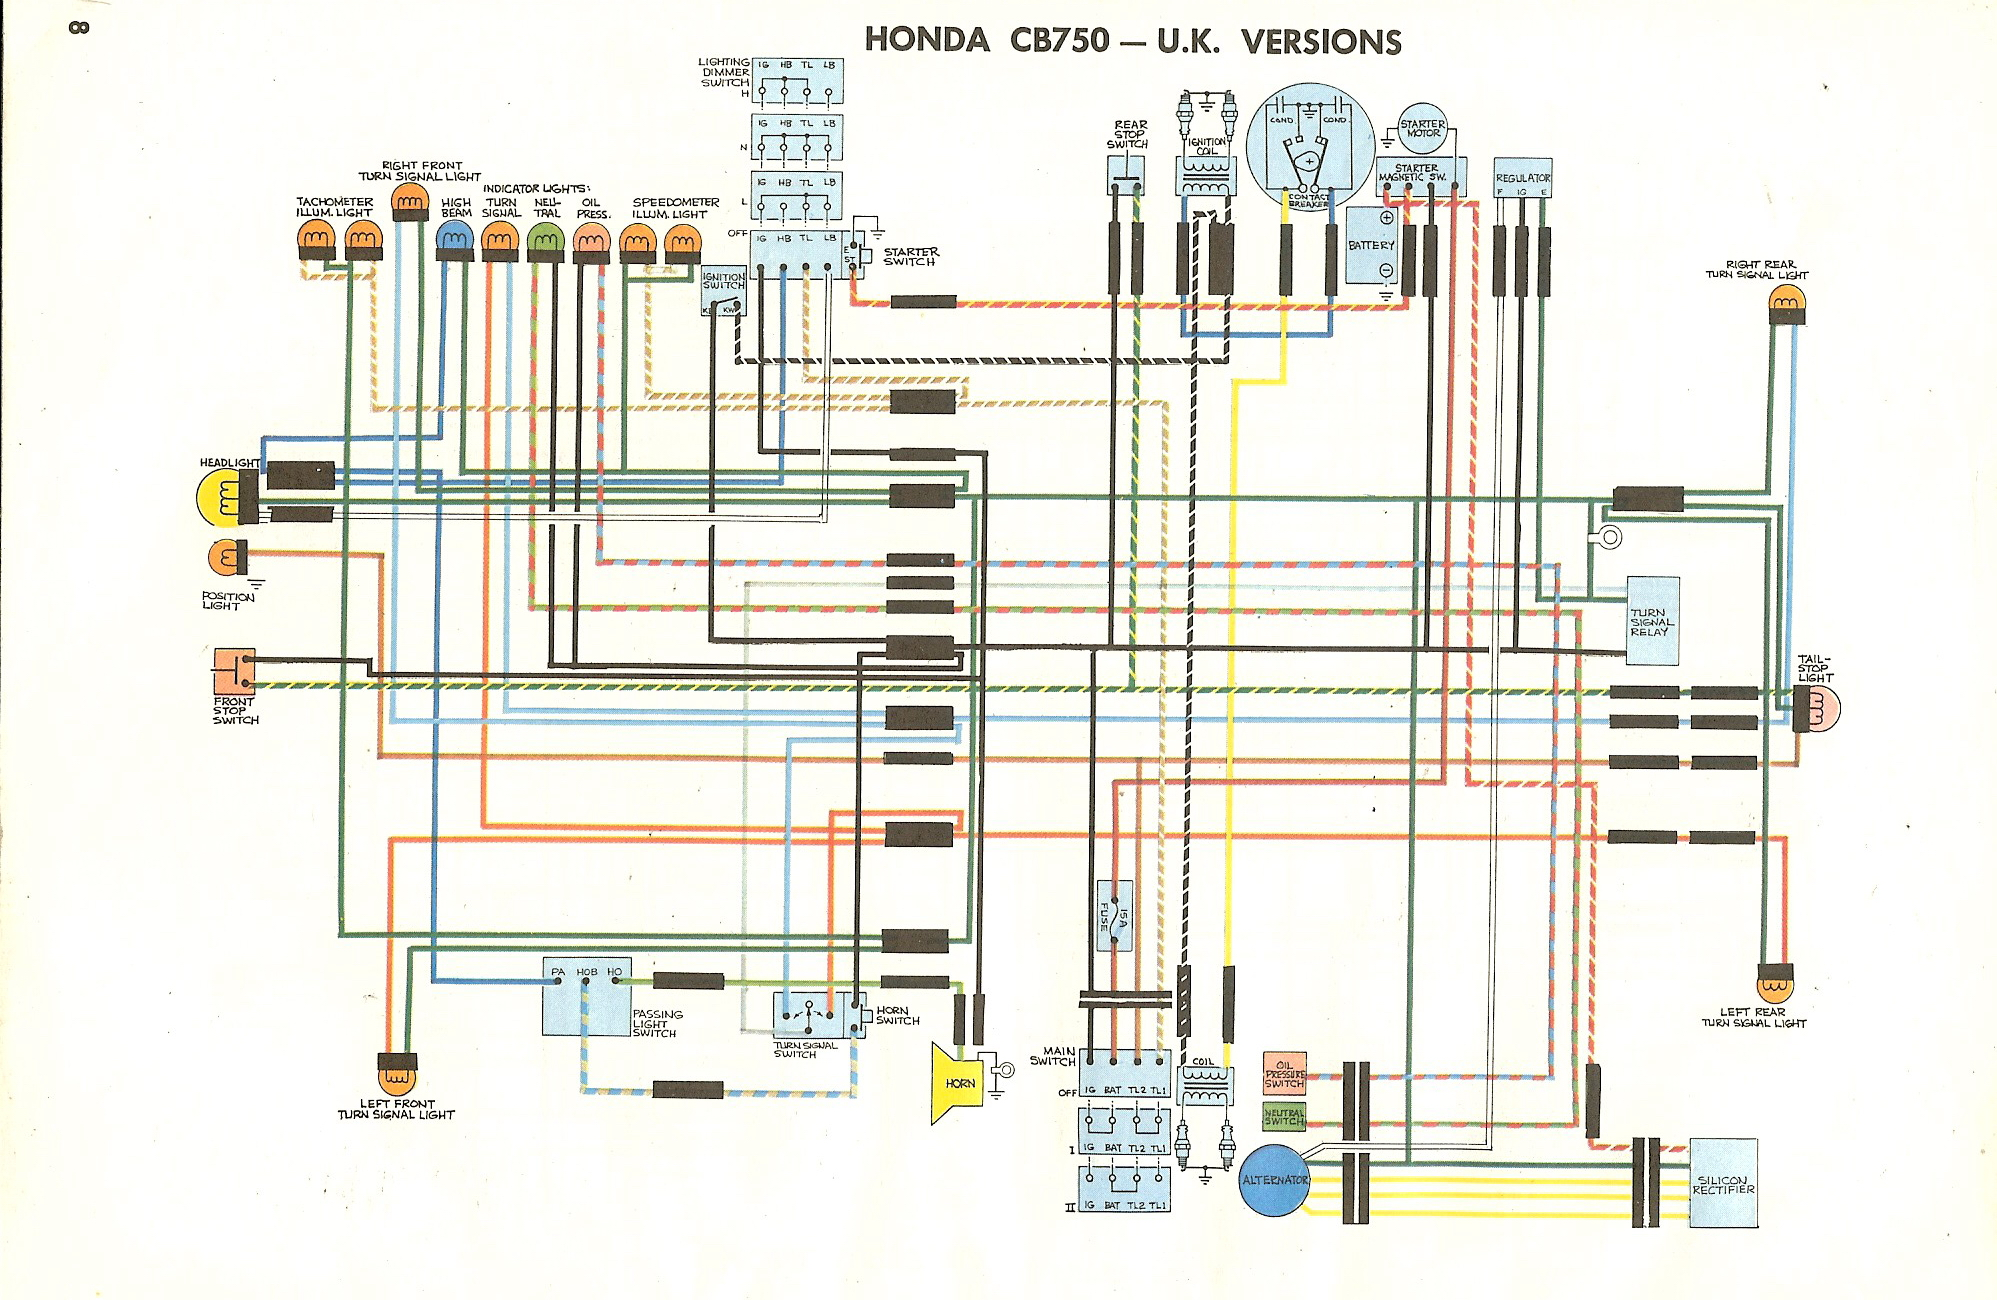 WD750UK cb750k 1971 honda cb350 wiring diagram at soozxer.org